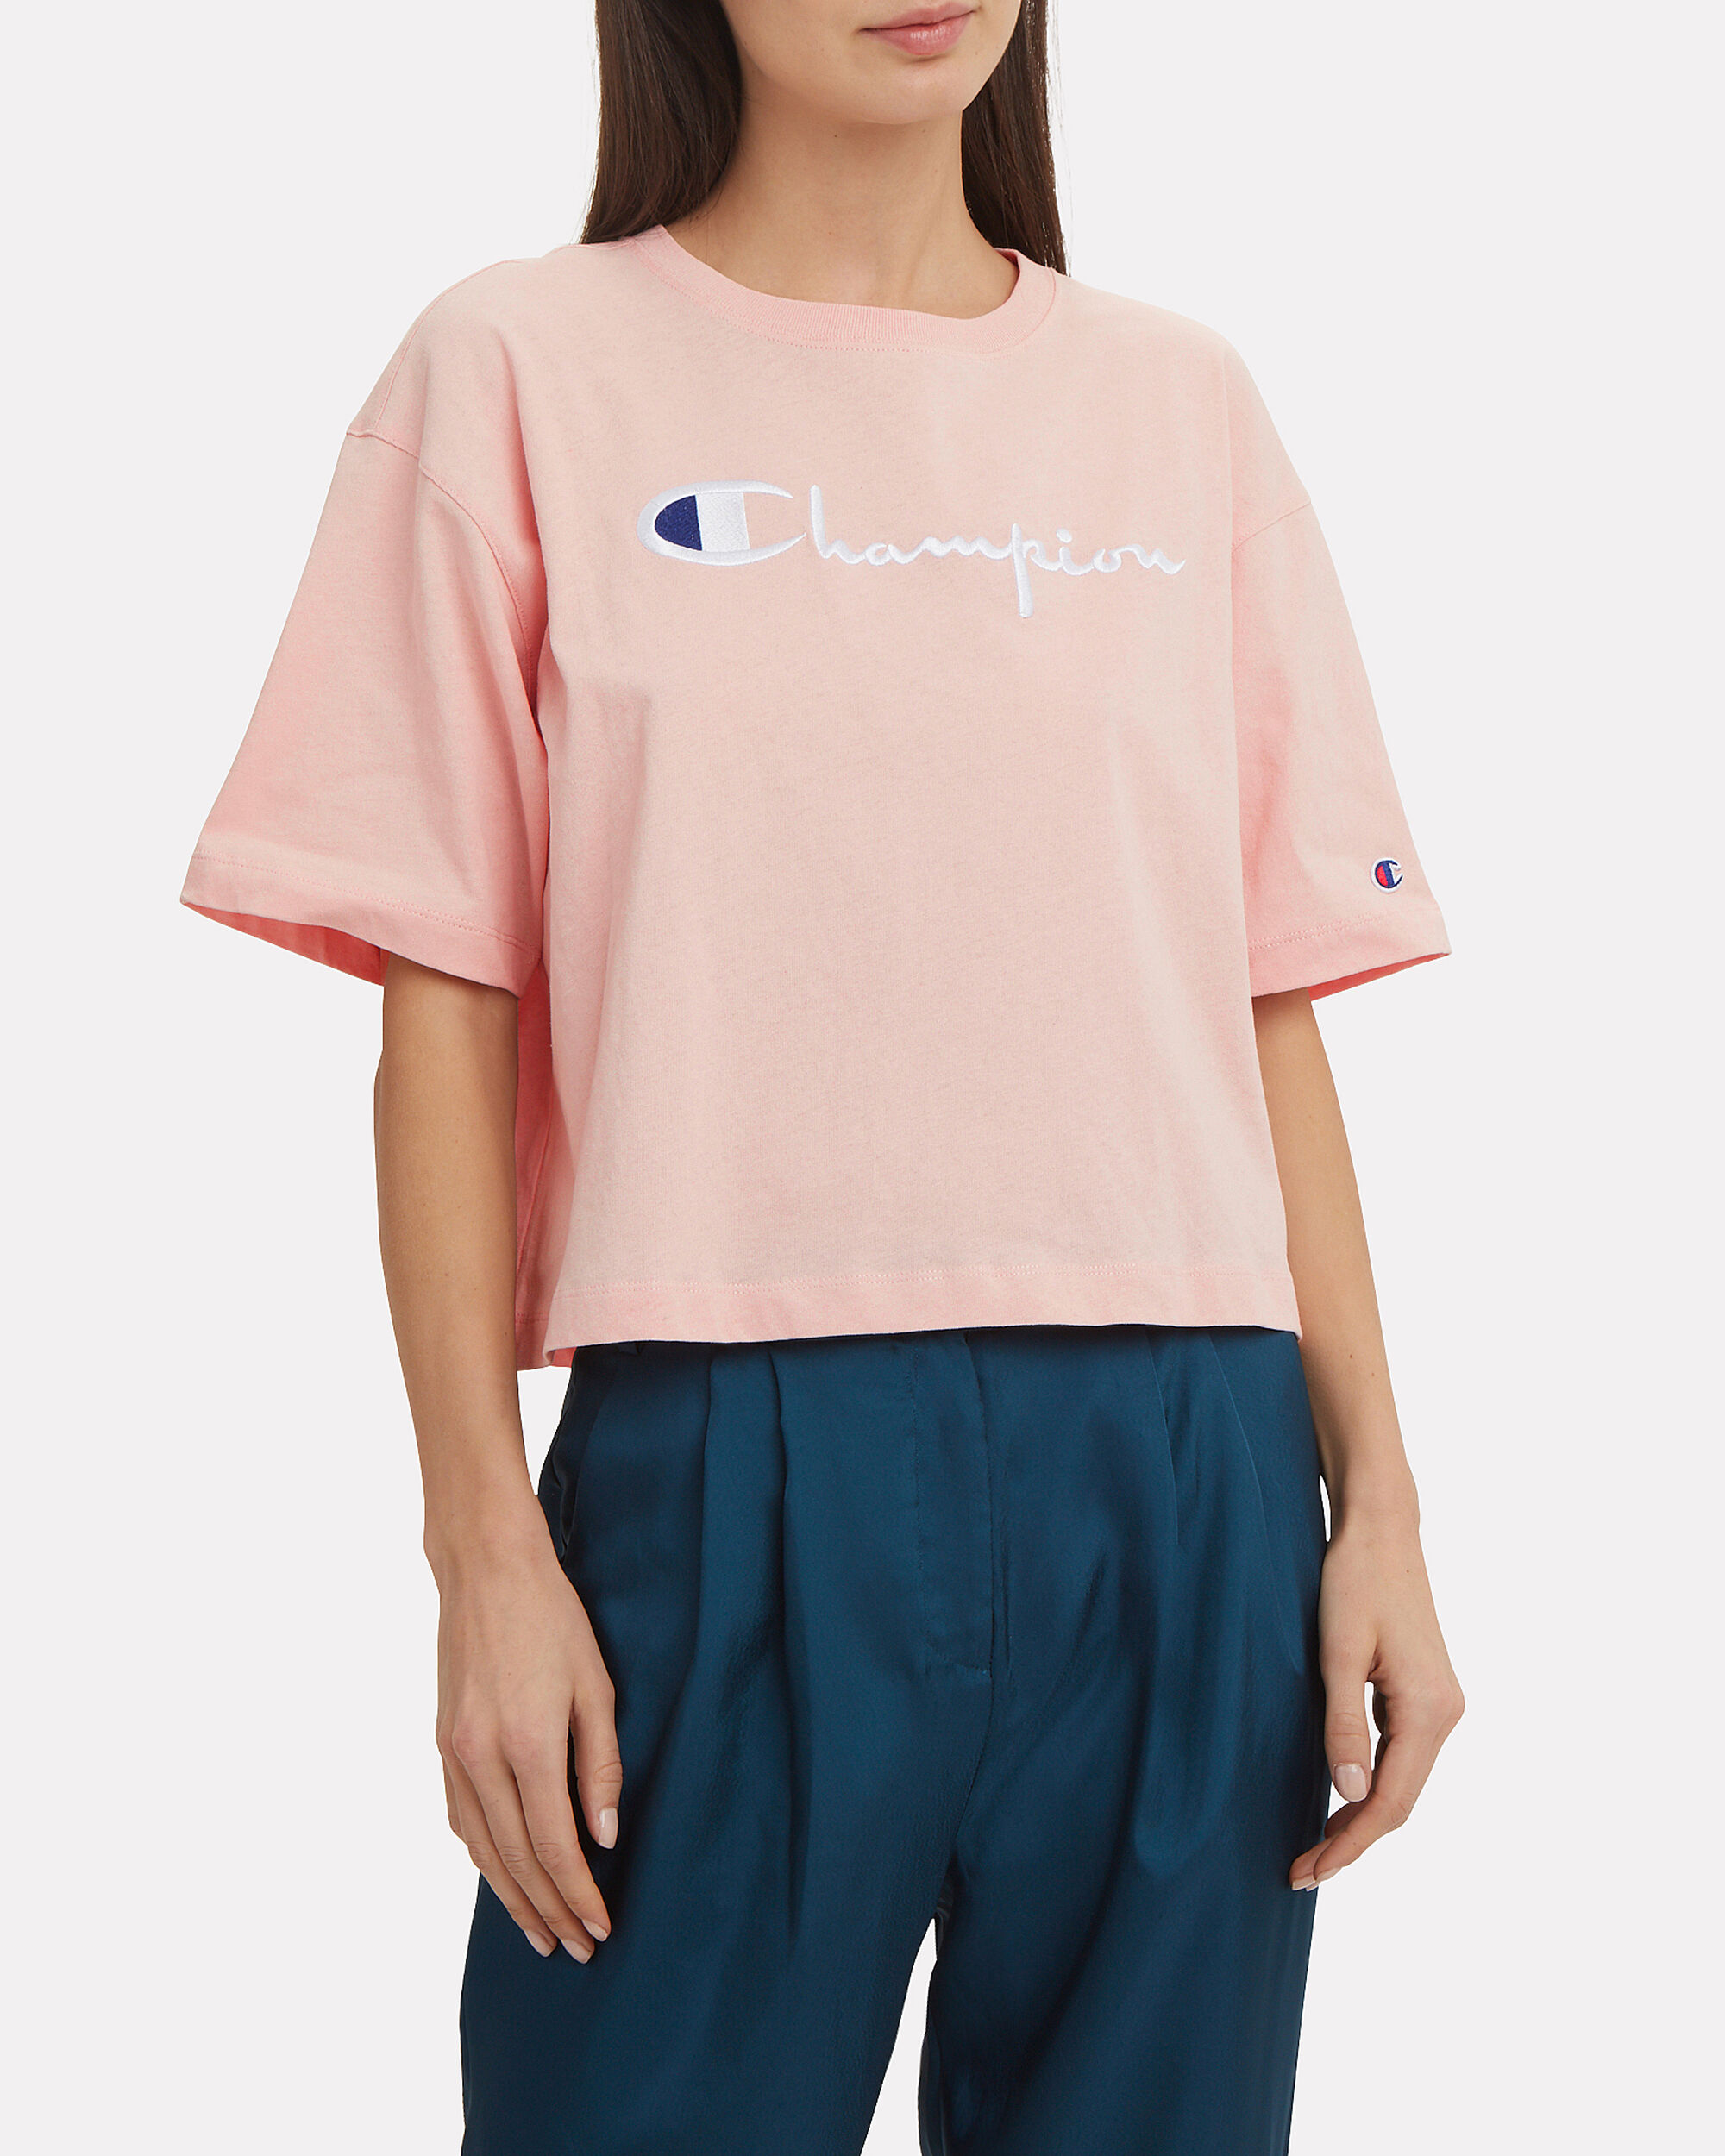 Orchid Cropped T-Shirt, LIGHT PINK, hi-res